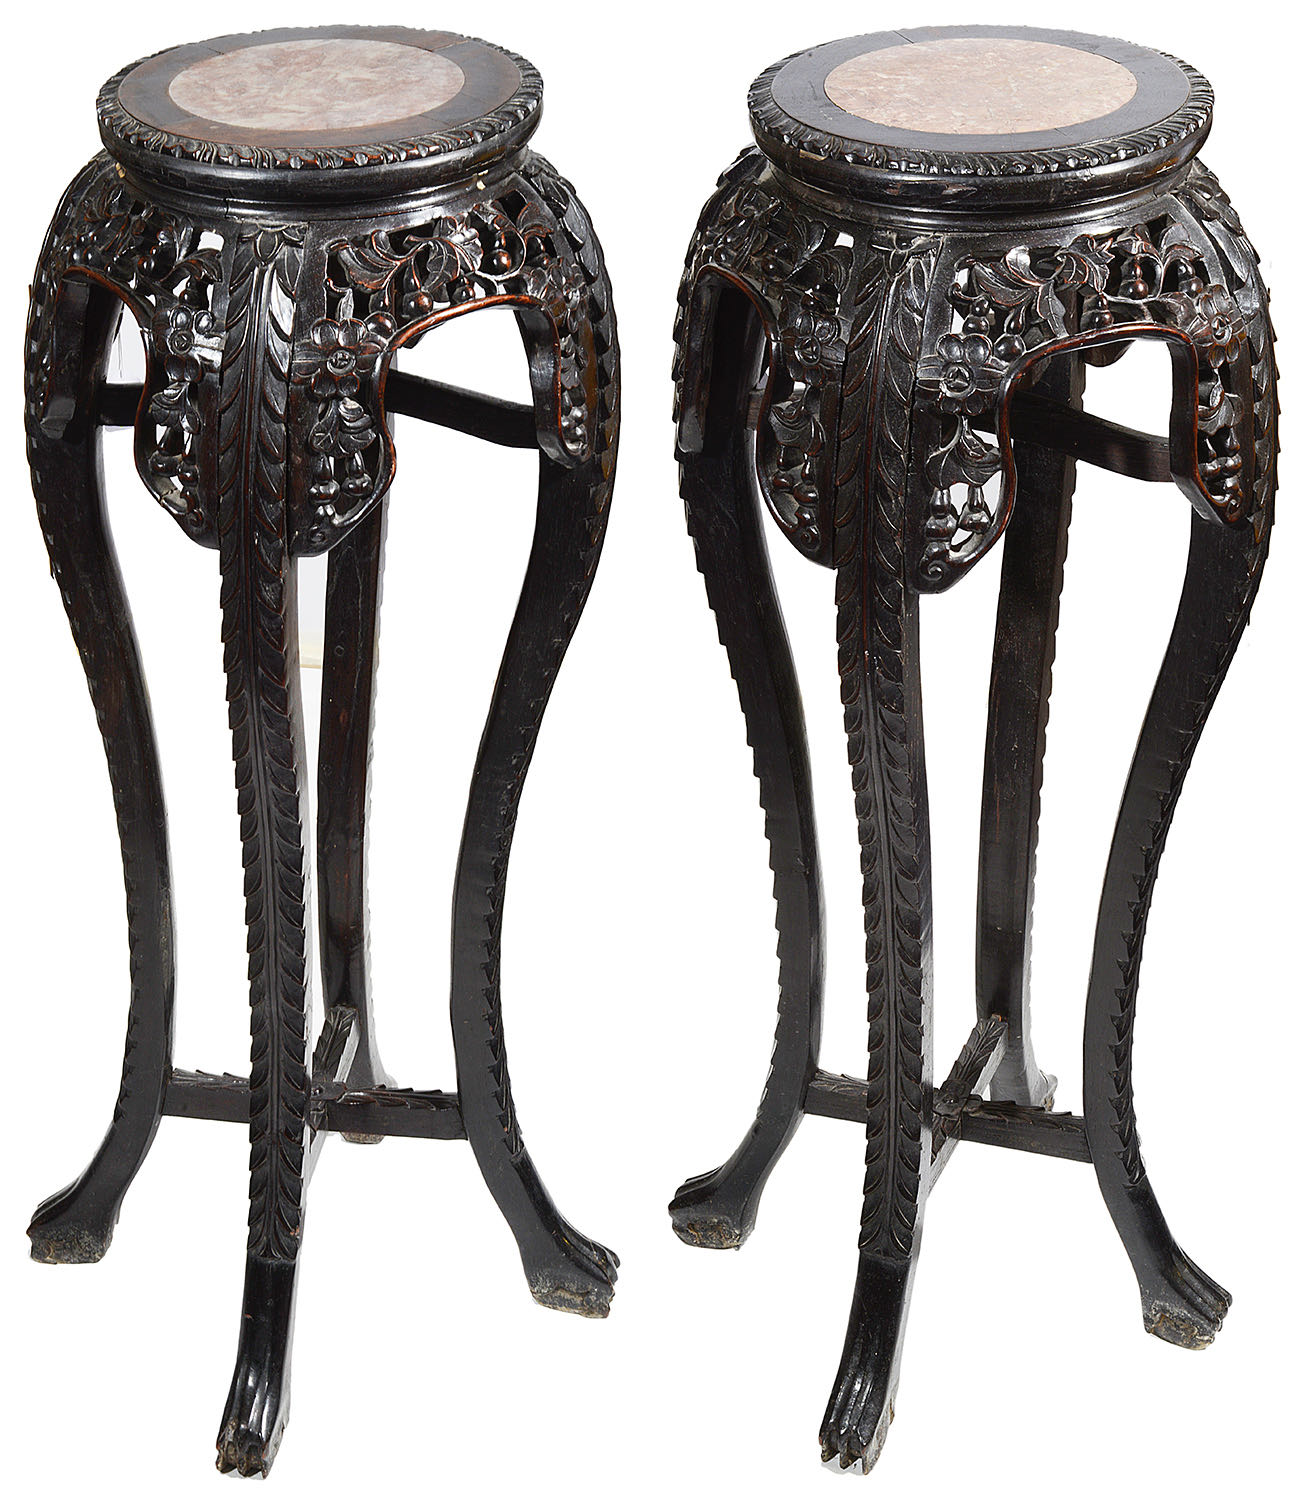 Lot 6 - A pair of late 19th century Chinese hardwood jardiniere stands